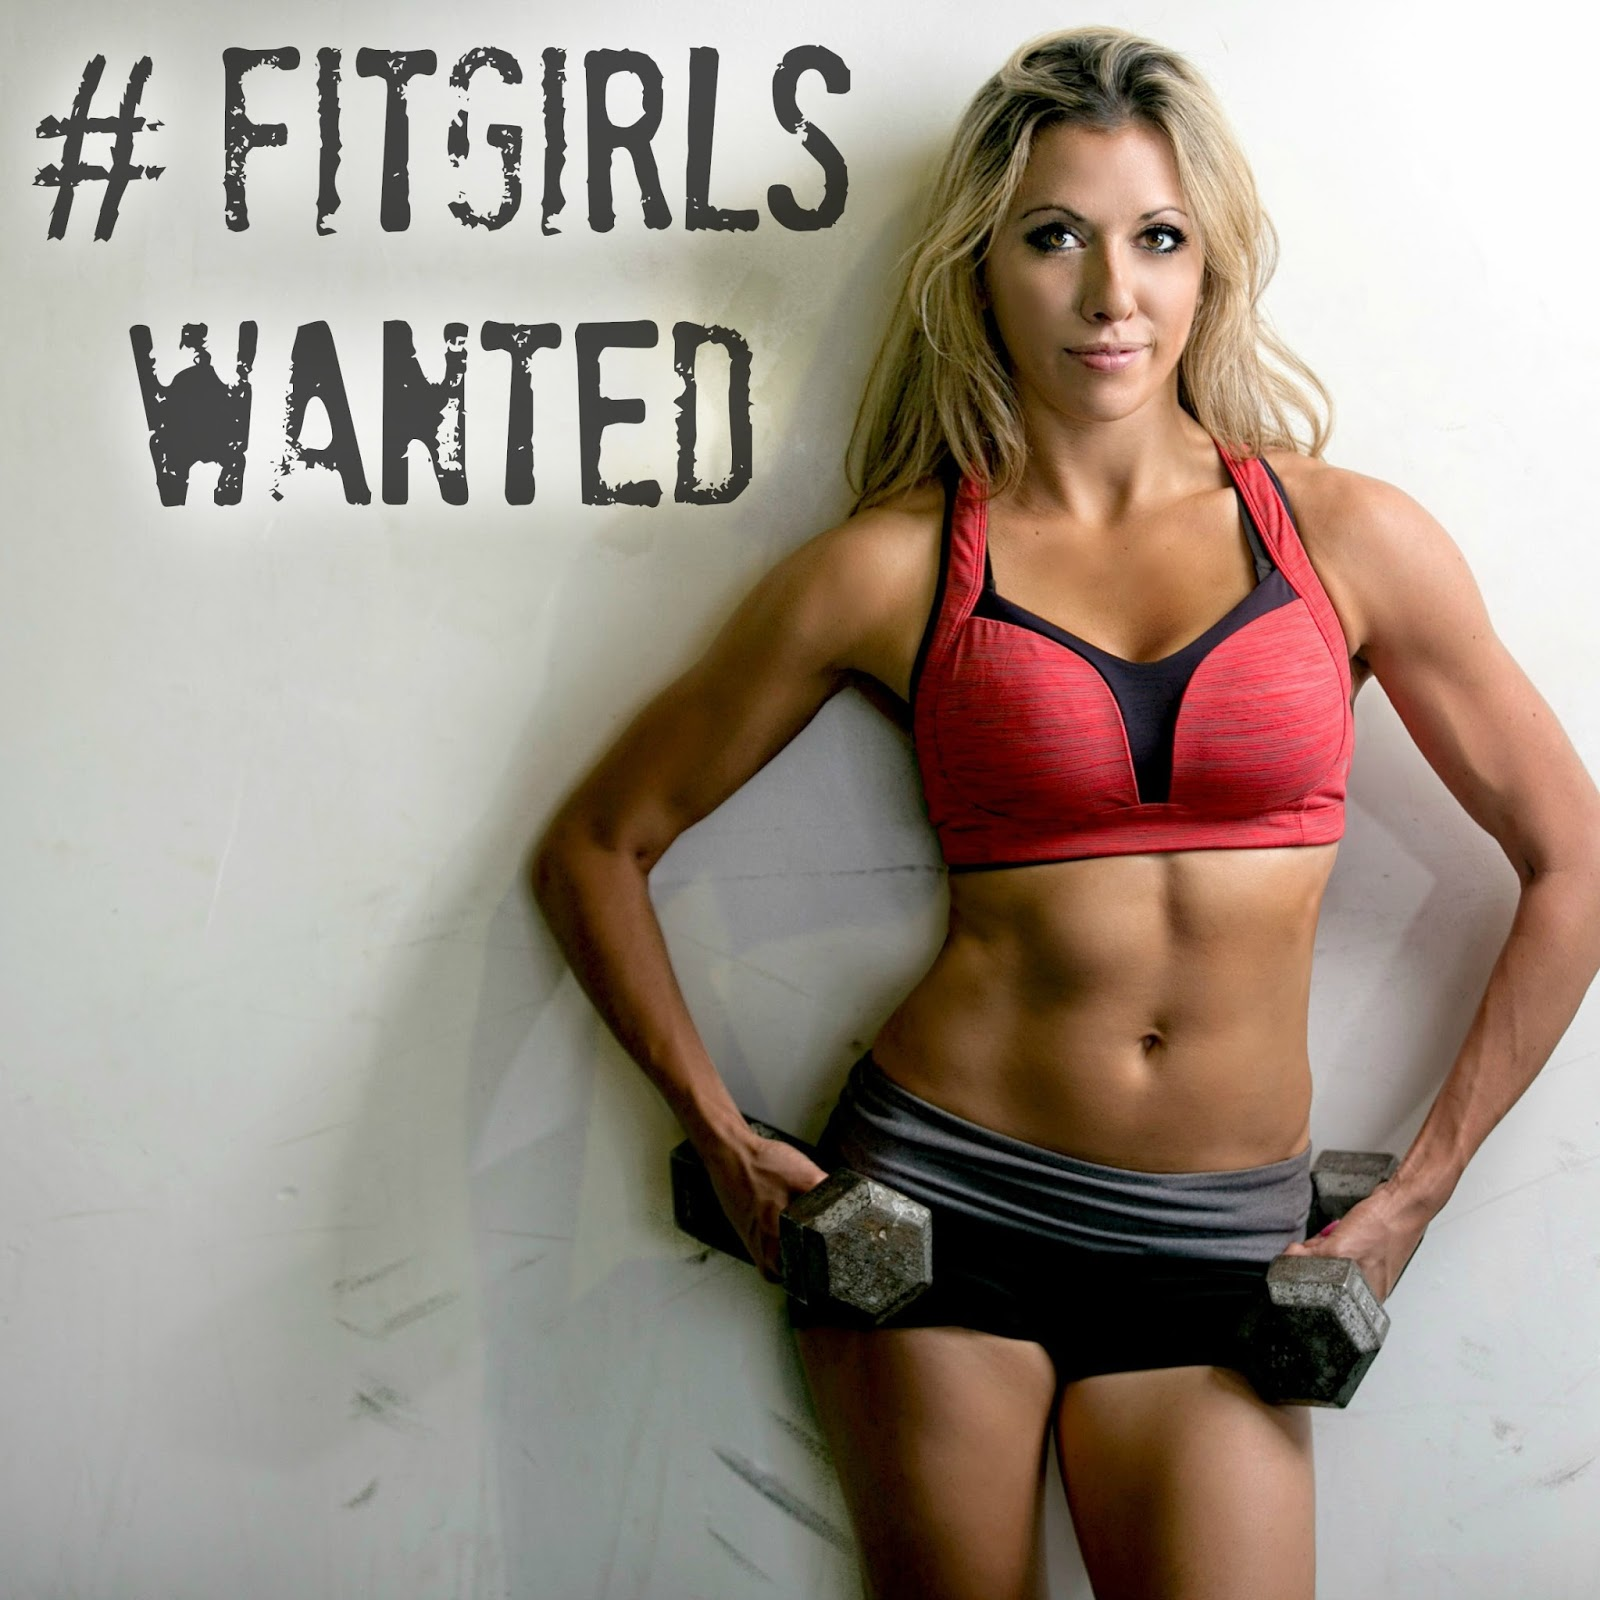 Angie bellemare fitness fitgirls wanted to listen to exactly what this is all about and hear a little about my story fill out the form below or send me an email angiebellemarefitnessgmail voltagebd Choice Image